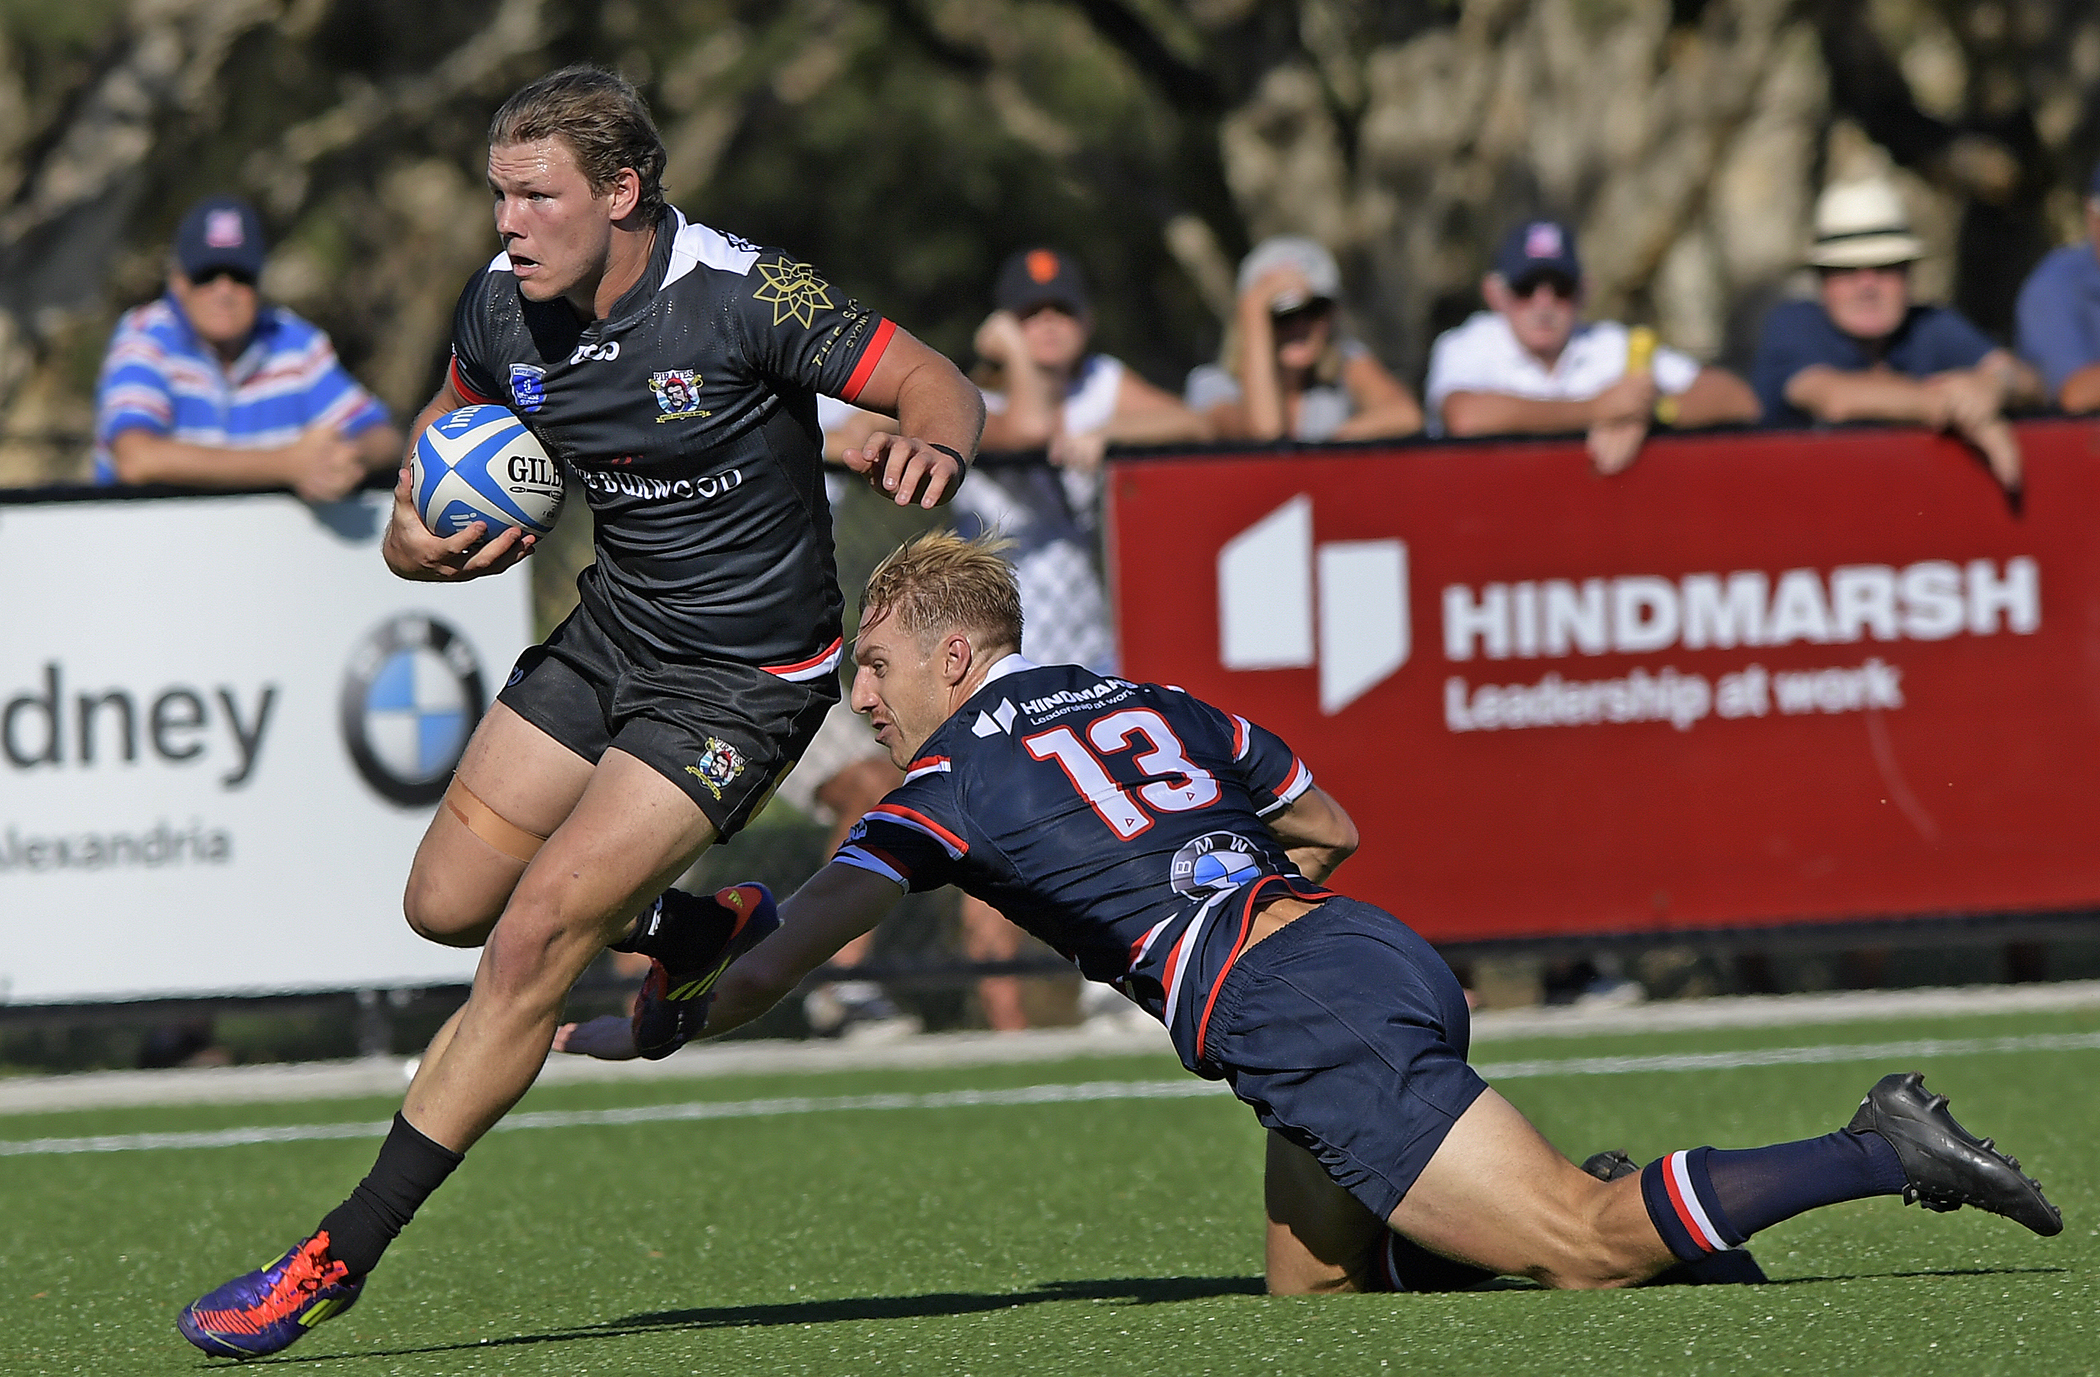 West harbour rugby shute shield betting spurs thunder line betting college